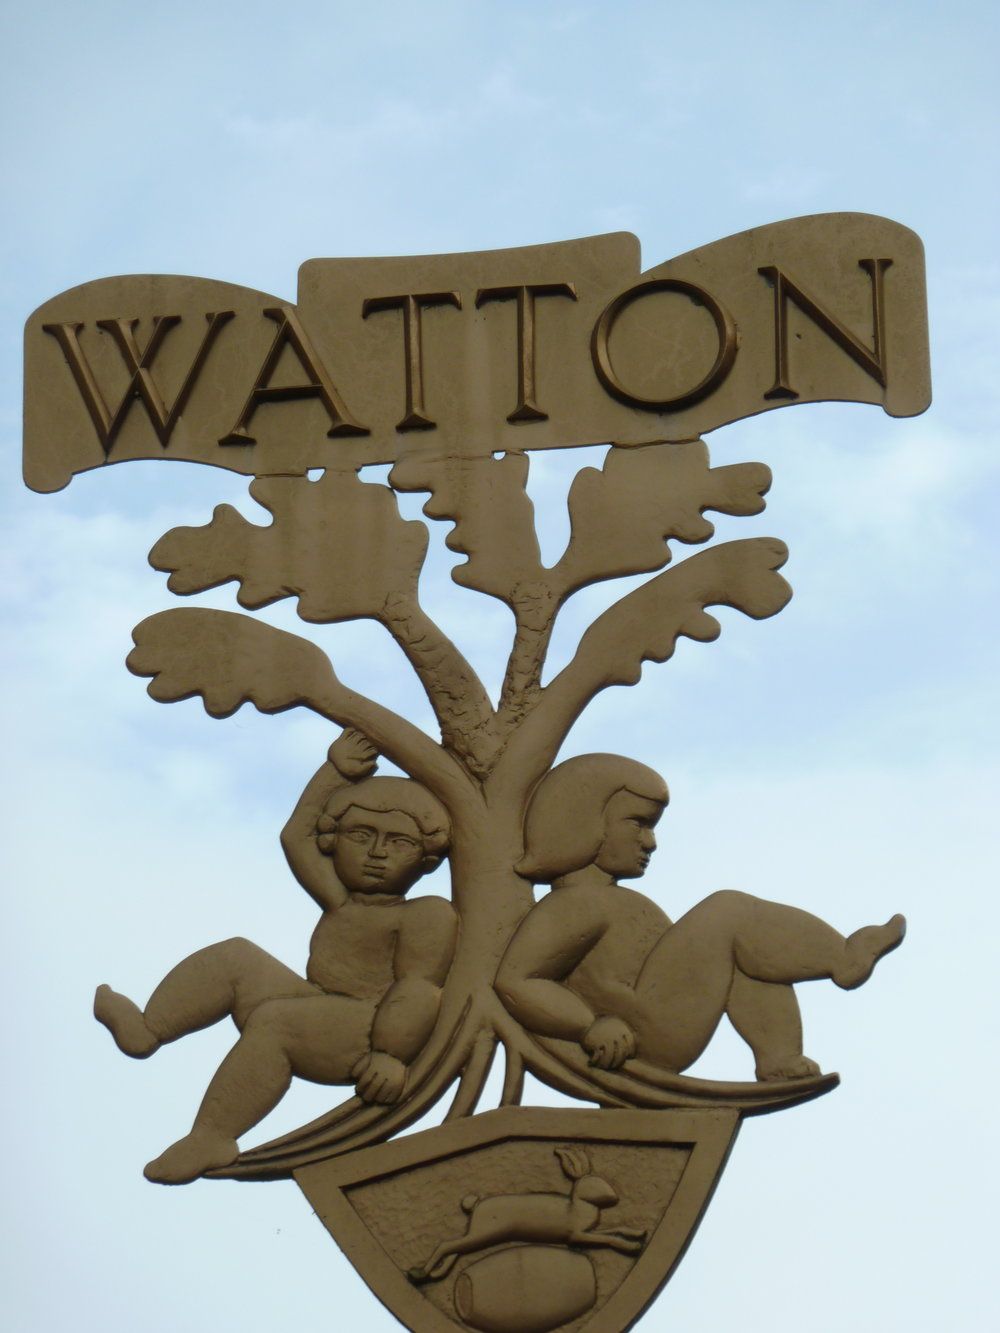 """ Watton town sign "" by  sleepymyf  is licensed under  CC BY-NC-ND 2.0"